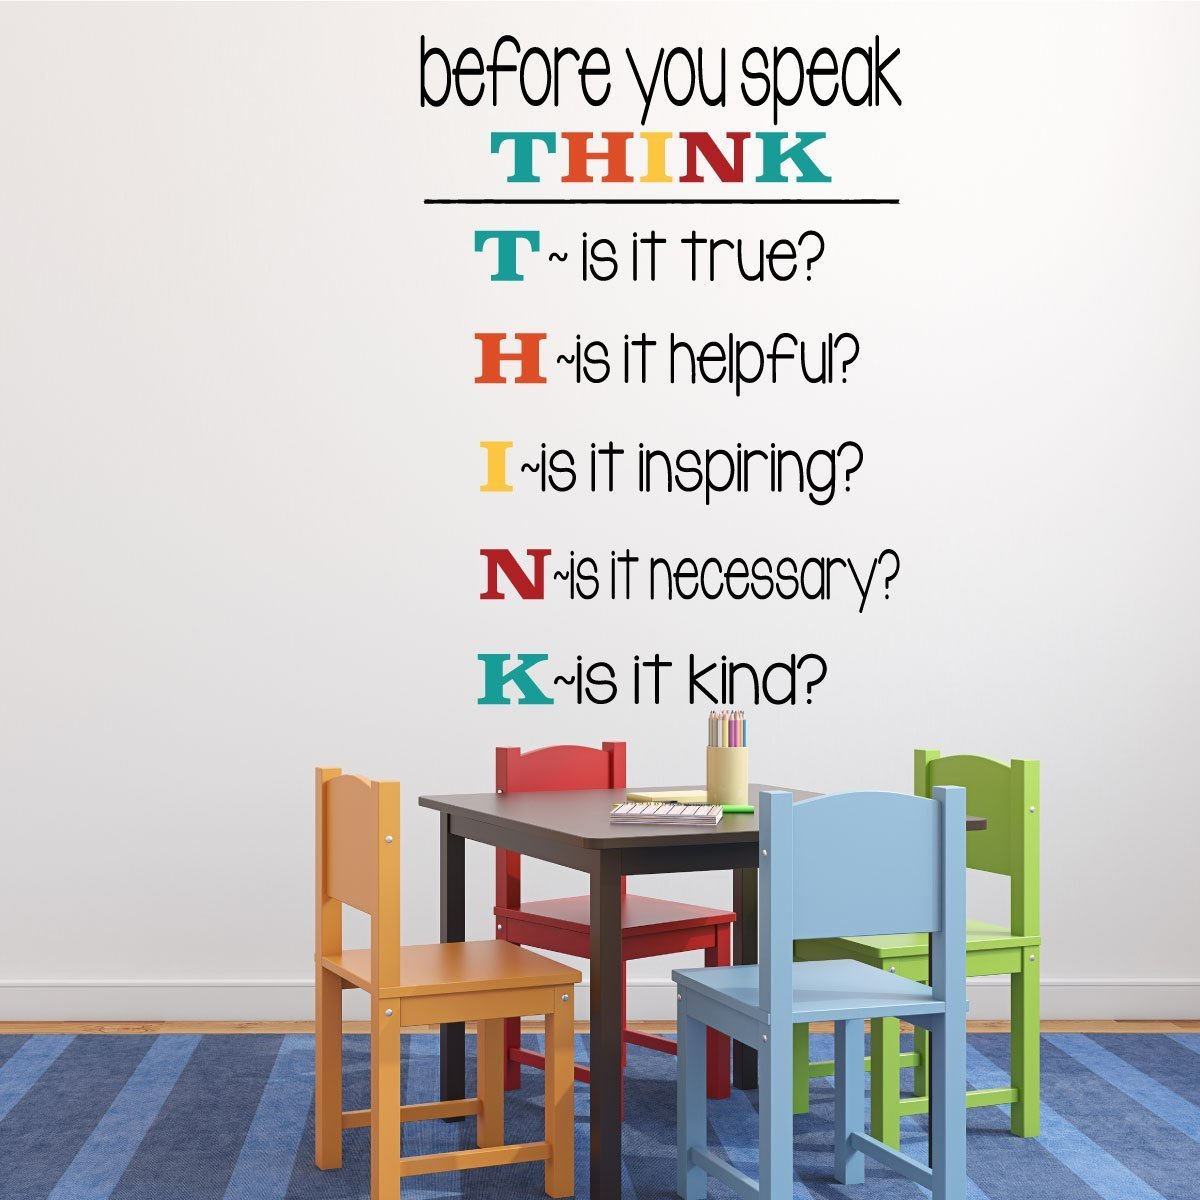 Classroom Decorations Vinyl Wall Decal or Sign for Teachers Classrooms used in Schools - Before You Speak, Think